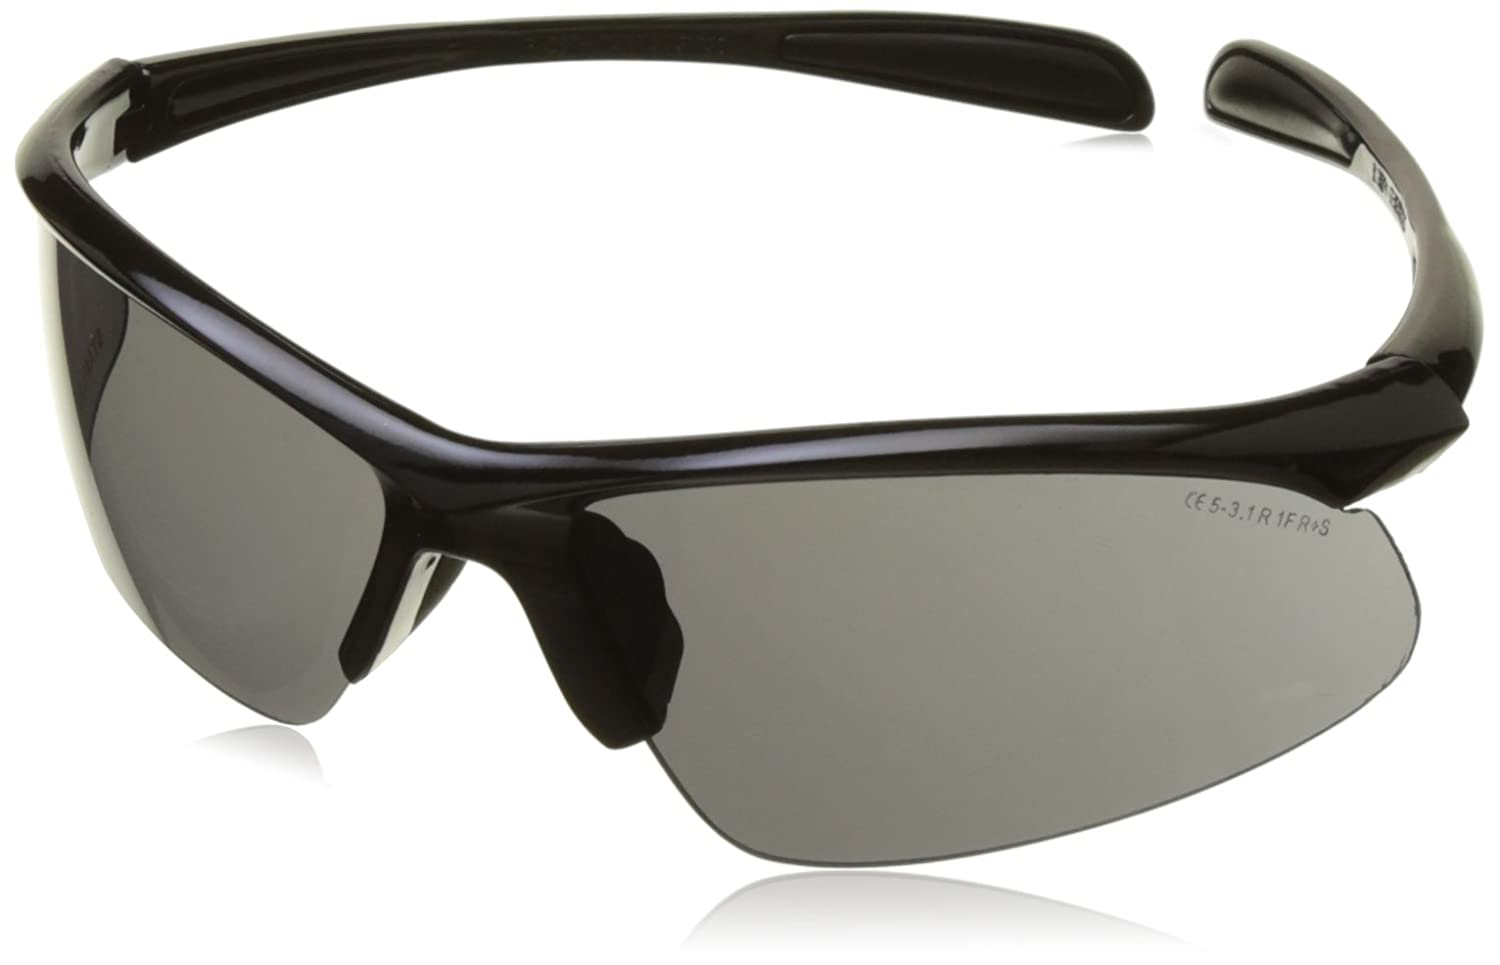 STANLEY Mens 10 Base Curved Lightweight Sunglasses